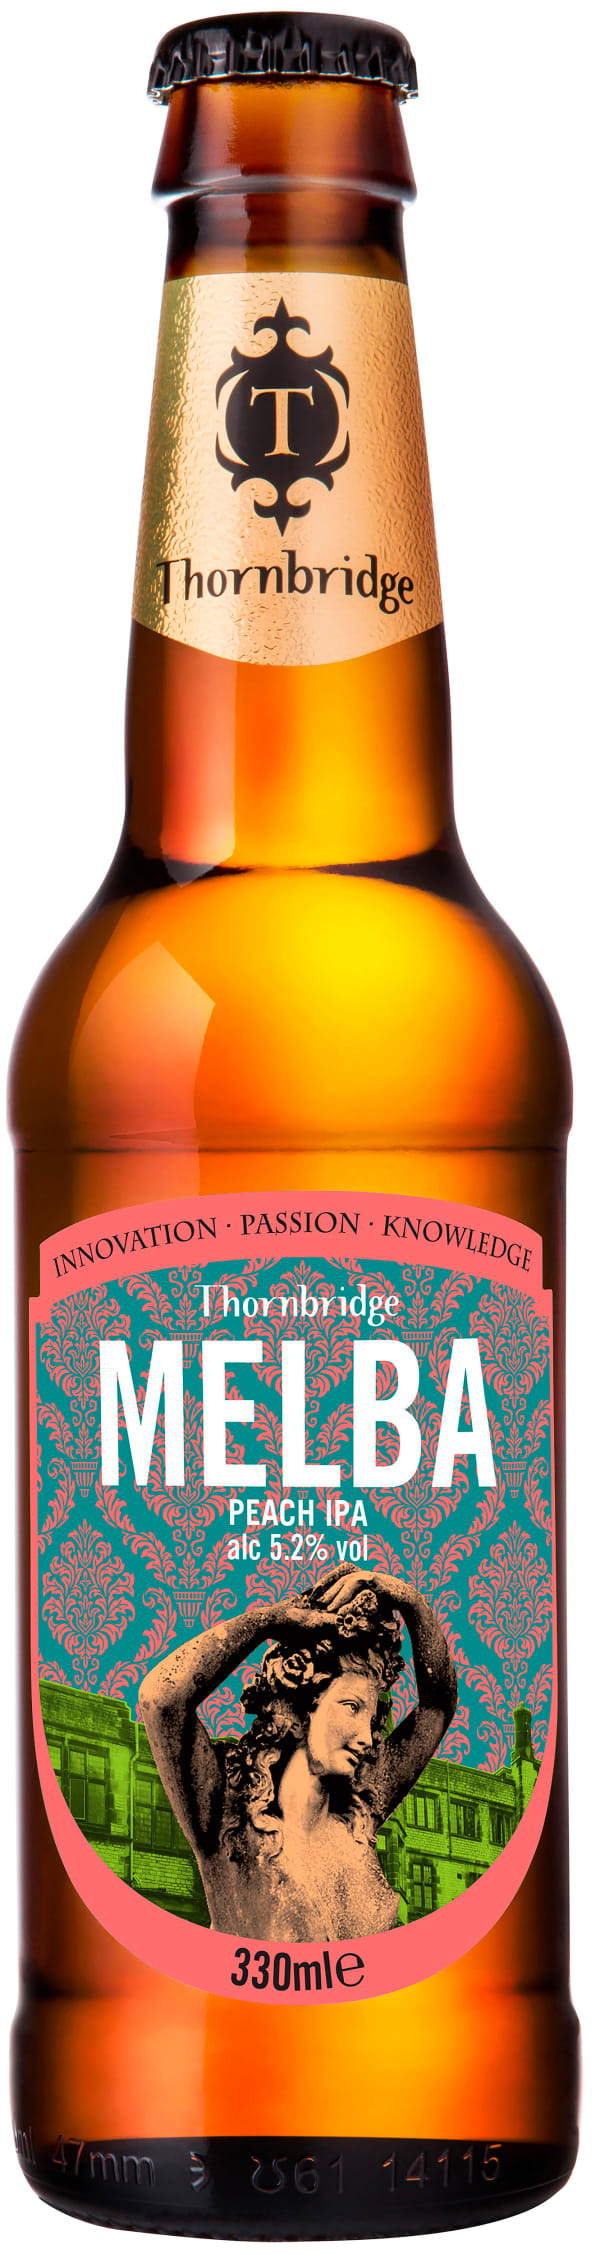 Thornbridge Melba Peach IPA